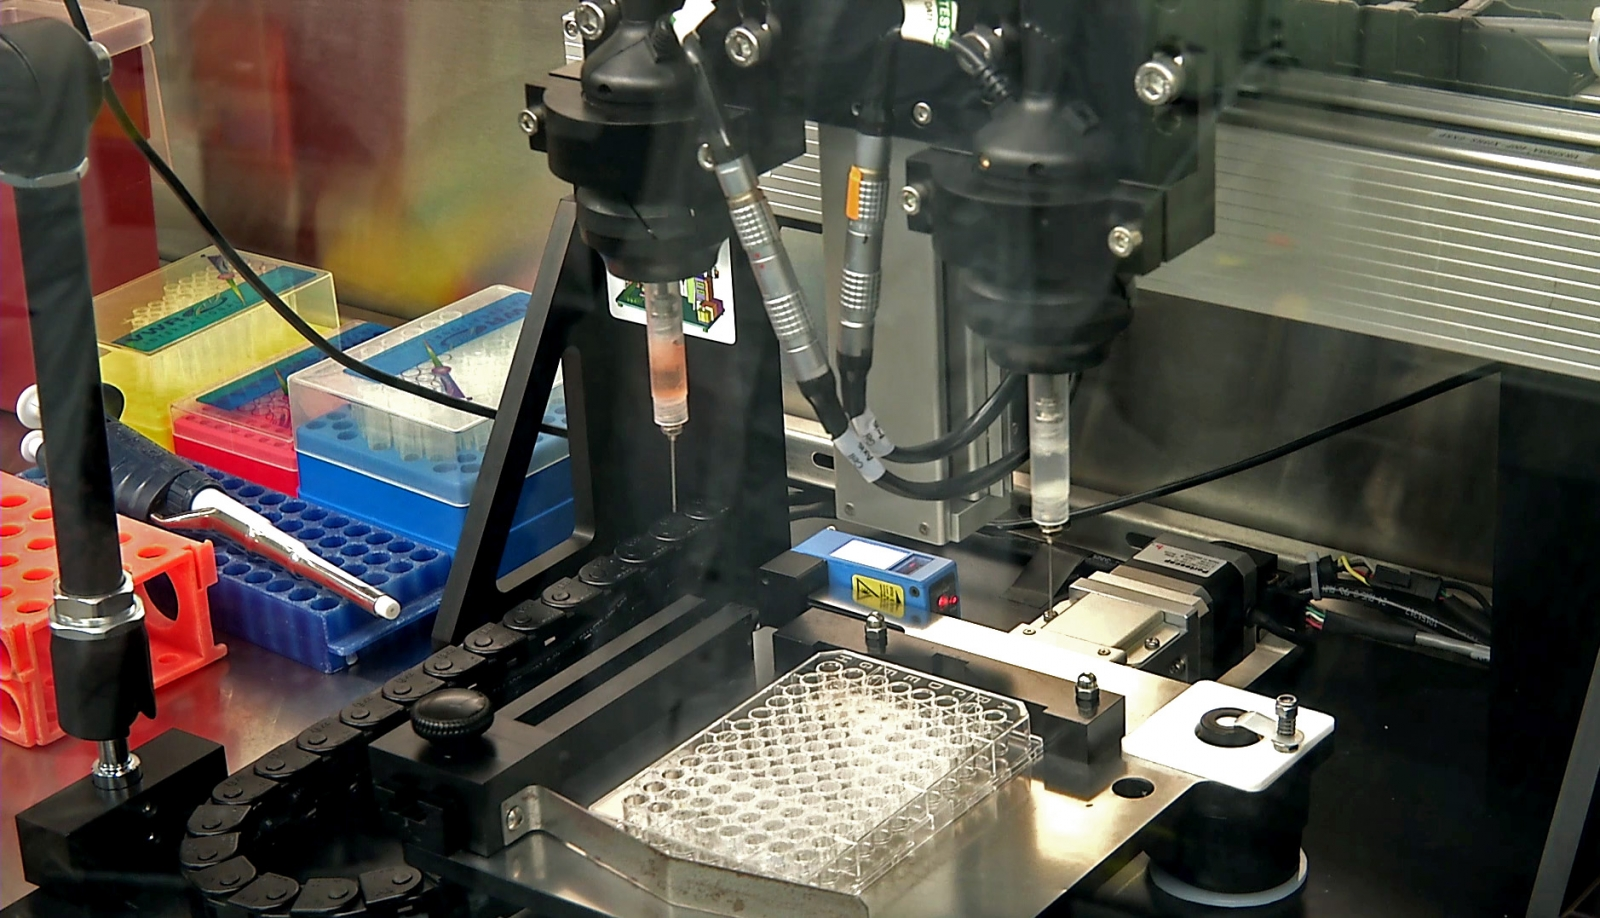 Organovo bioprinting out multiple liver samples